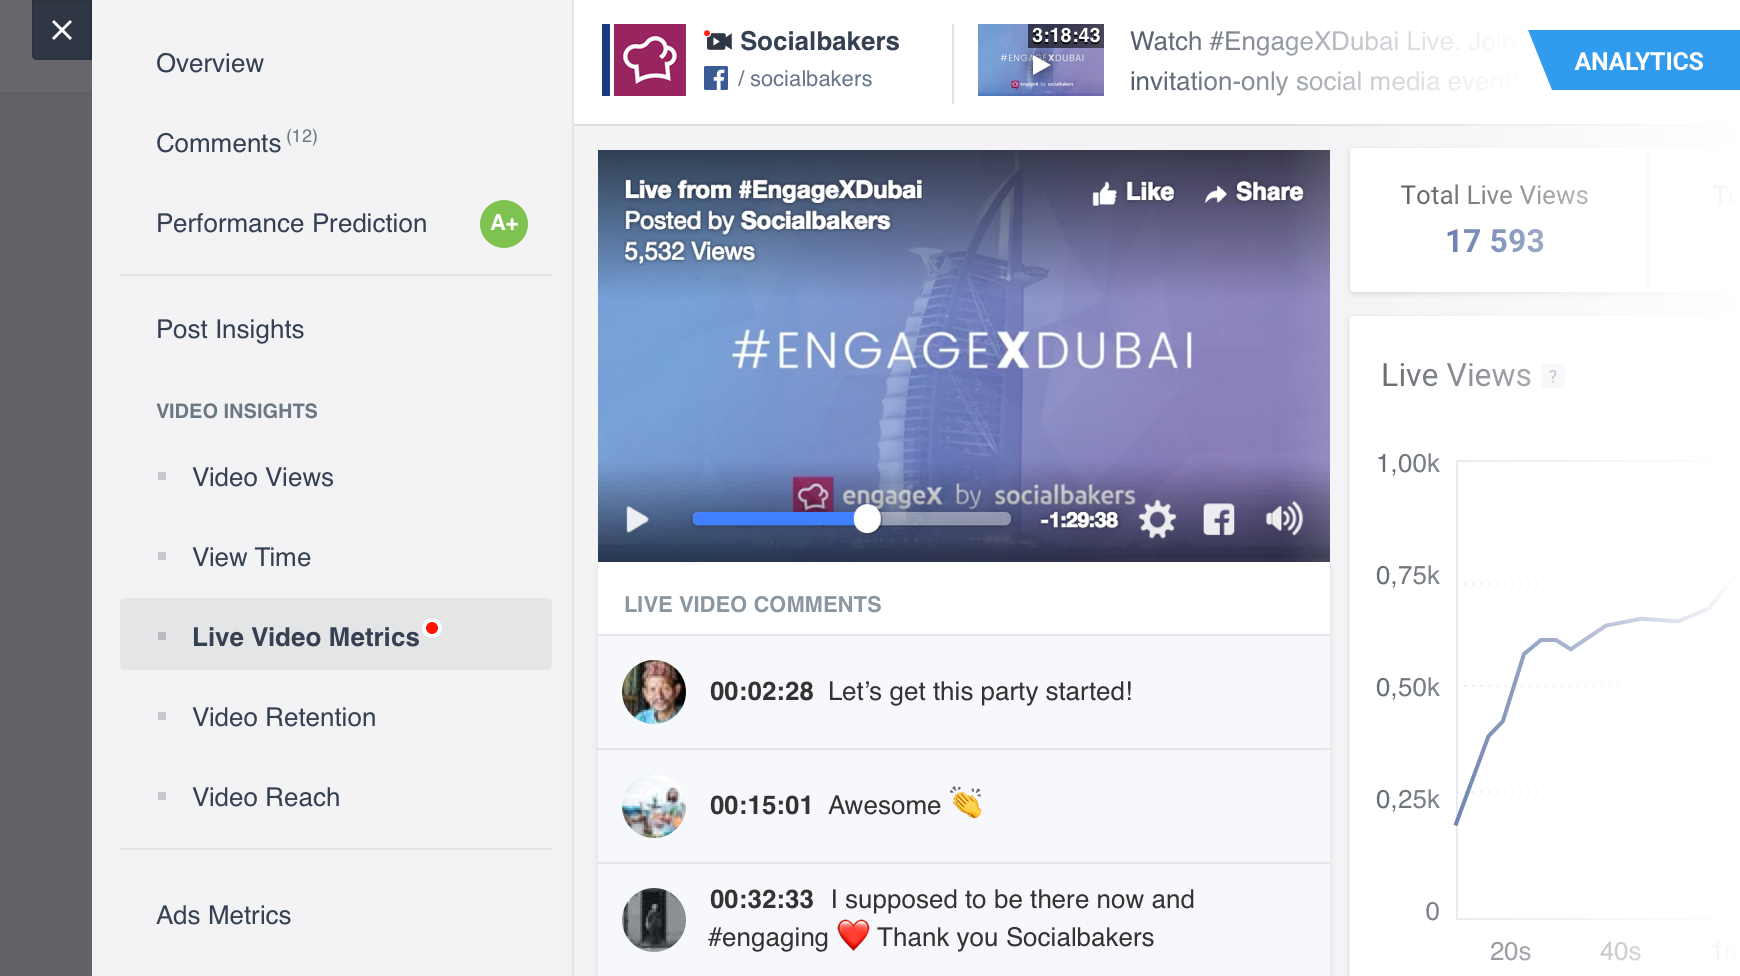 Socialbakers_Live_Video_Metrics_2x.png